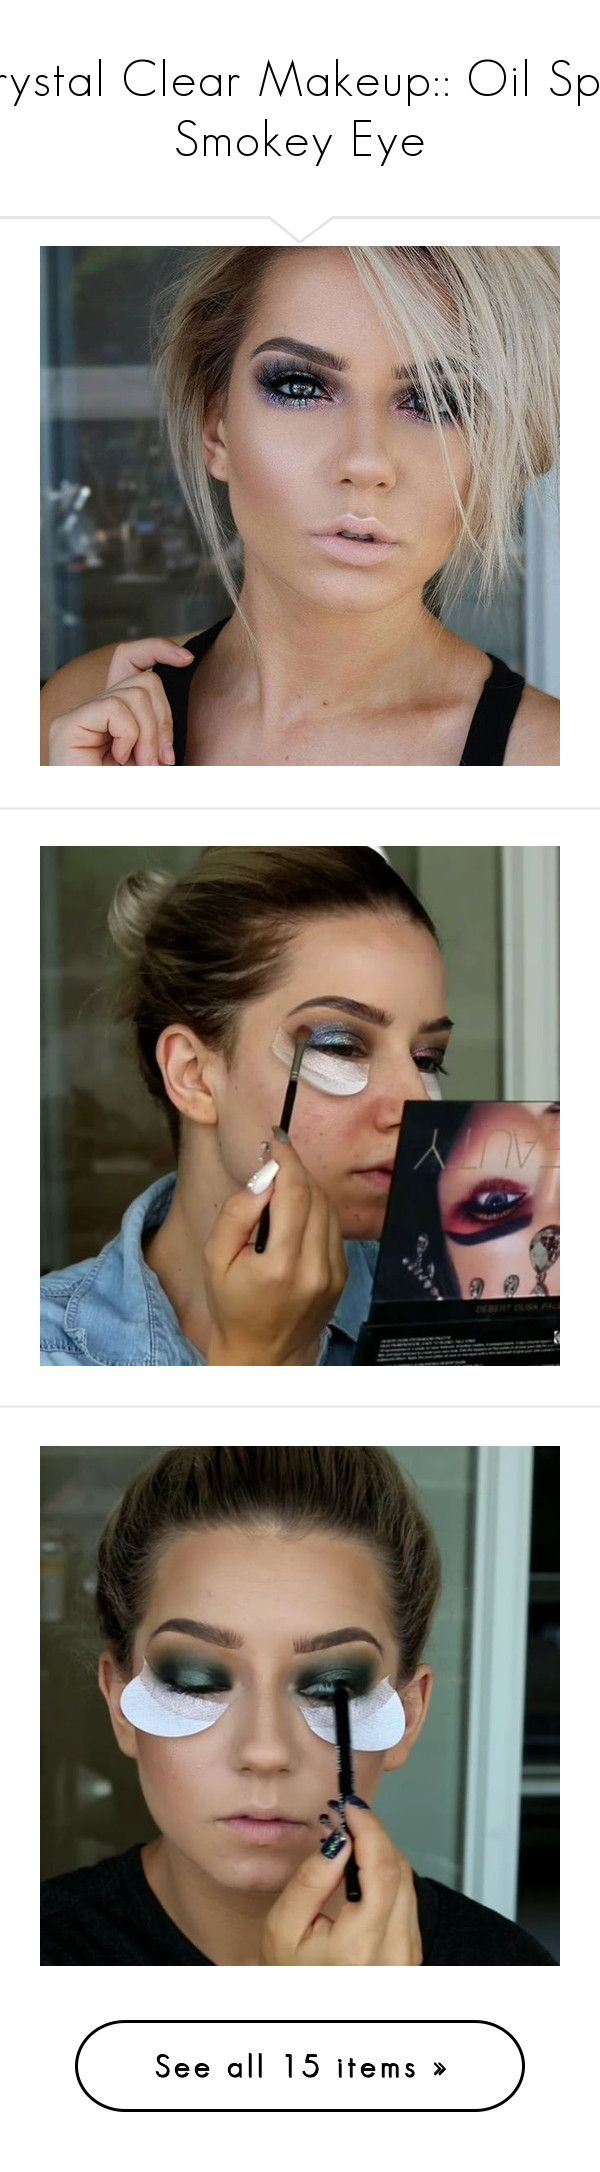 """Krystal Clear Makeup:: Oil Spill Smokey Eye"" by sbhackney ❤ liked on Polyvore featuring beauty products, makeup, face makeup, foundation, concealer, brightening concealer, highlighting concealer, face powder, beauty and face brightening makeup"